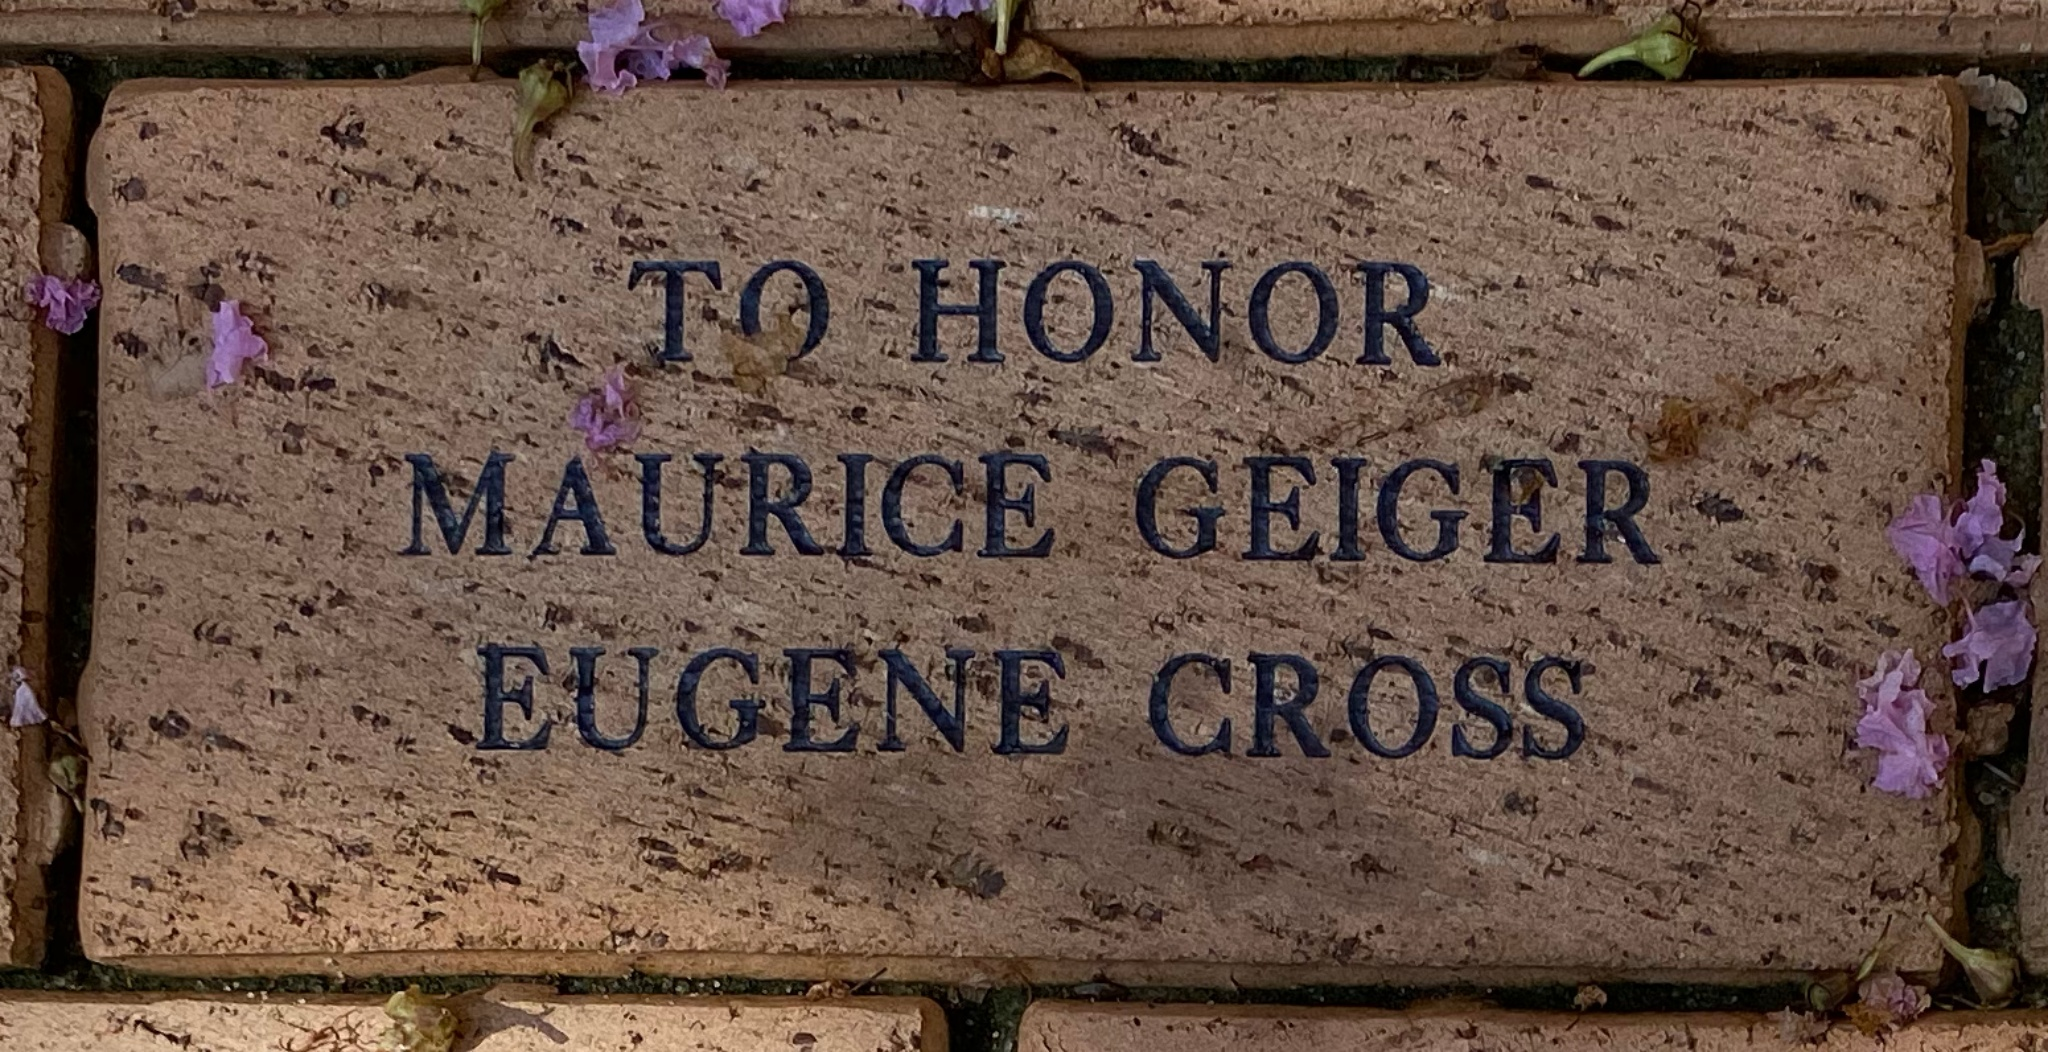 TO HONOR  MARUICE GEIGER EUGENE CROSS